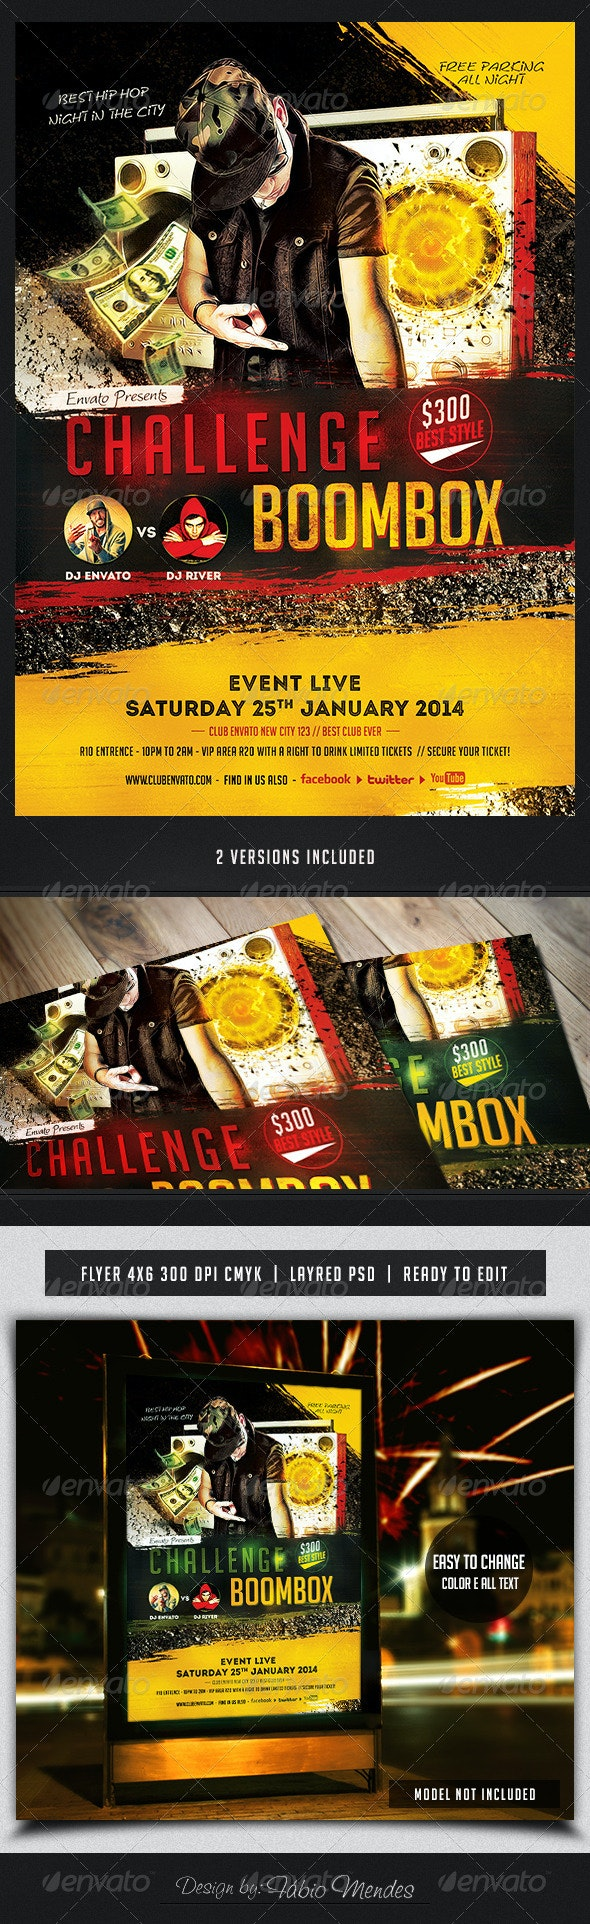 Challenge Boombox Flyer Template  - Flyers Print Templates